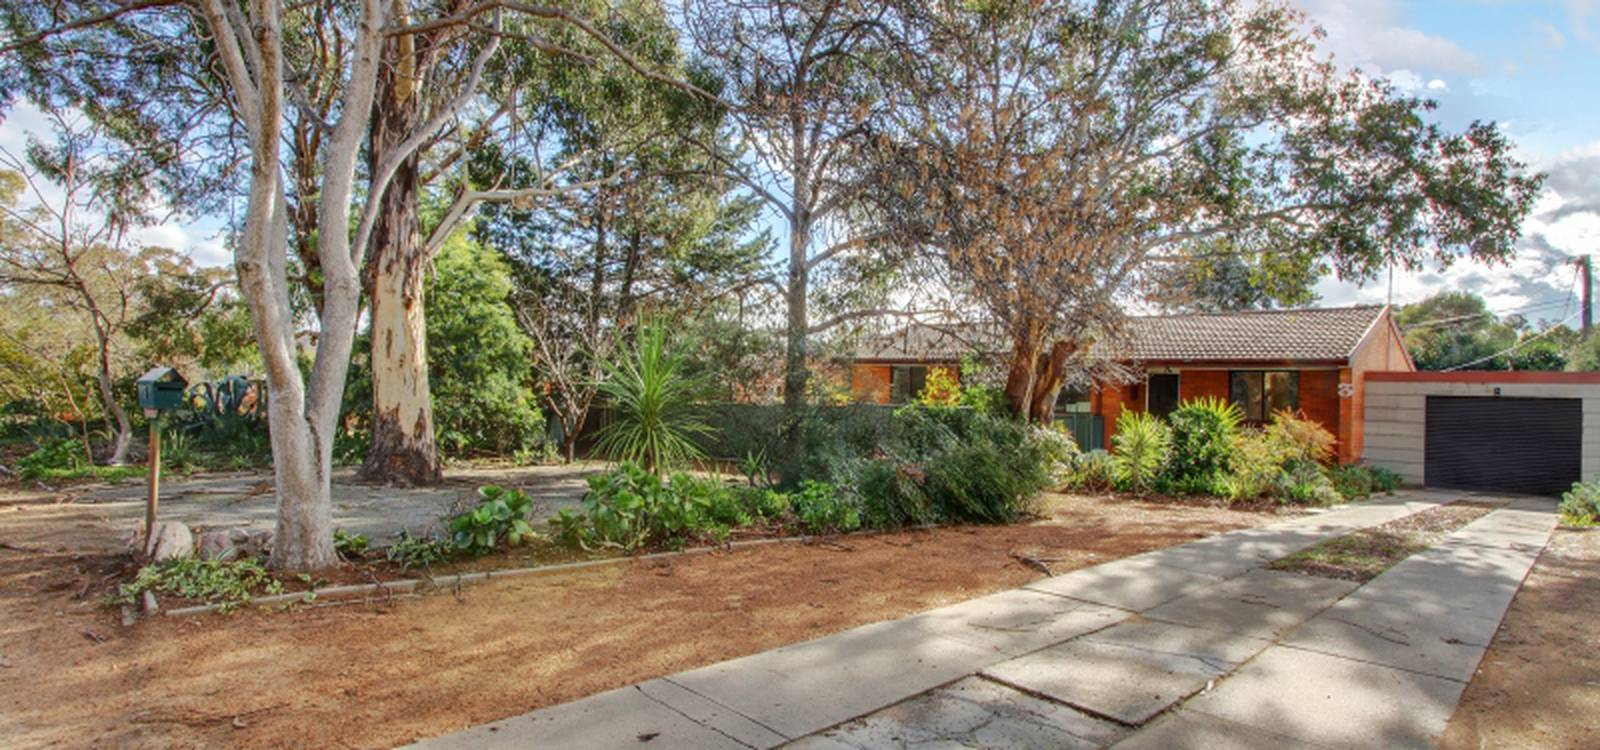 3 Hardey Place STIRLING, ACT 2611 - photo 1